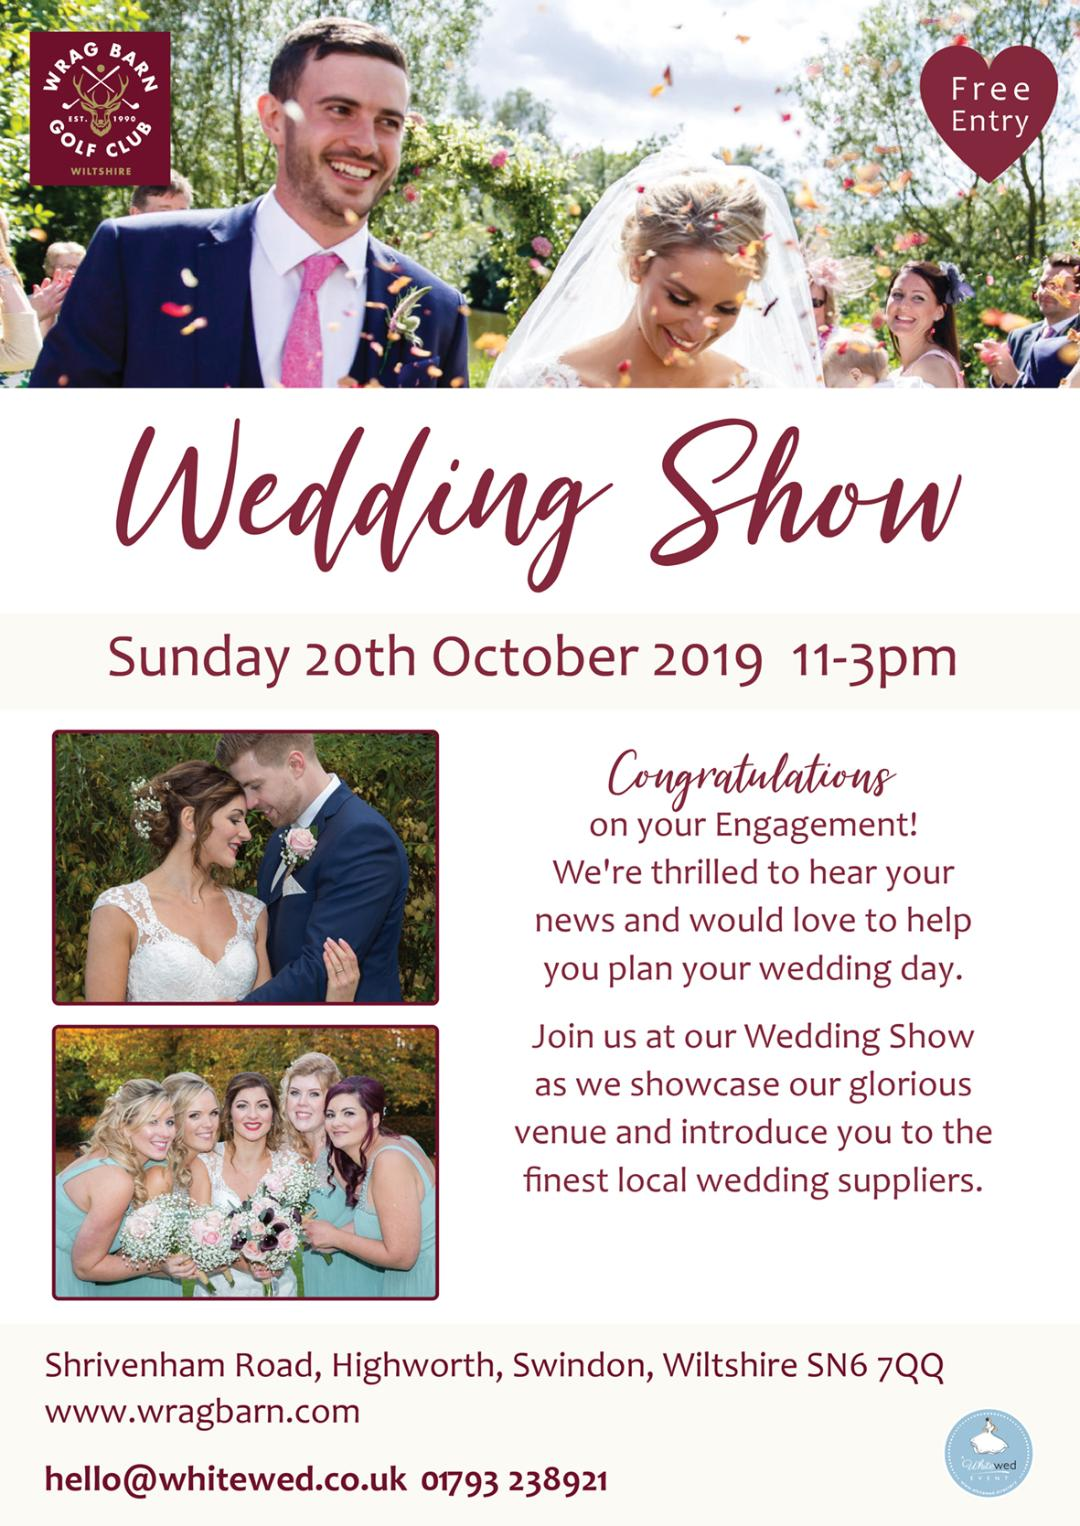 Wrag Barn's Wedding Show